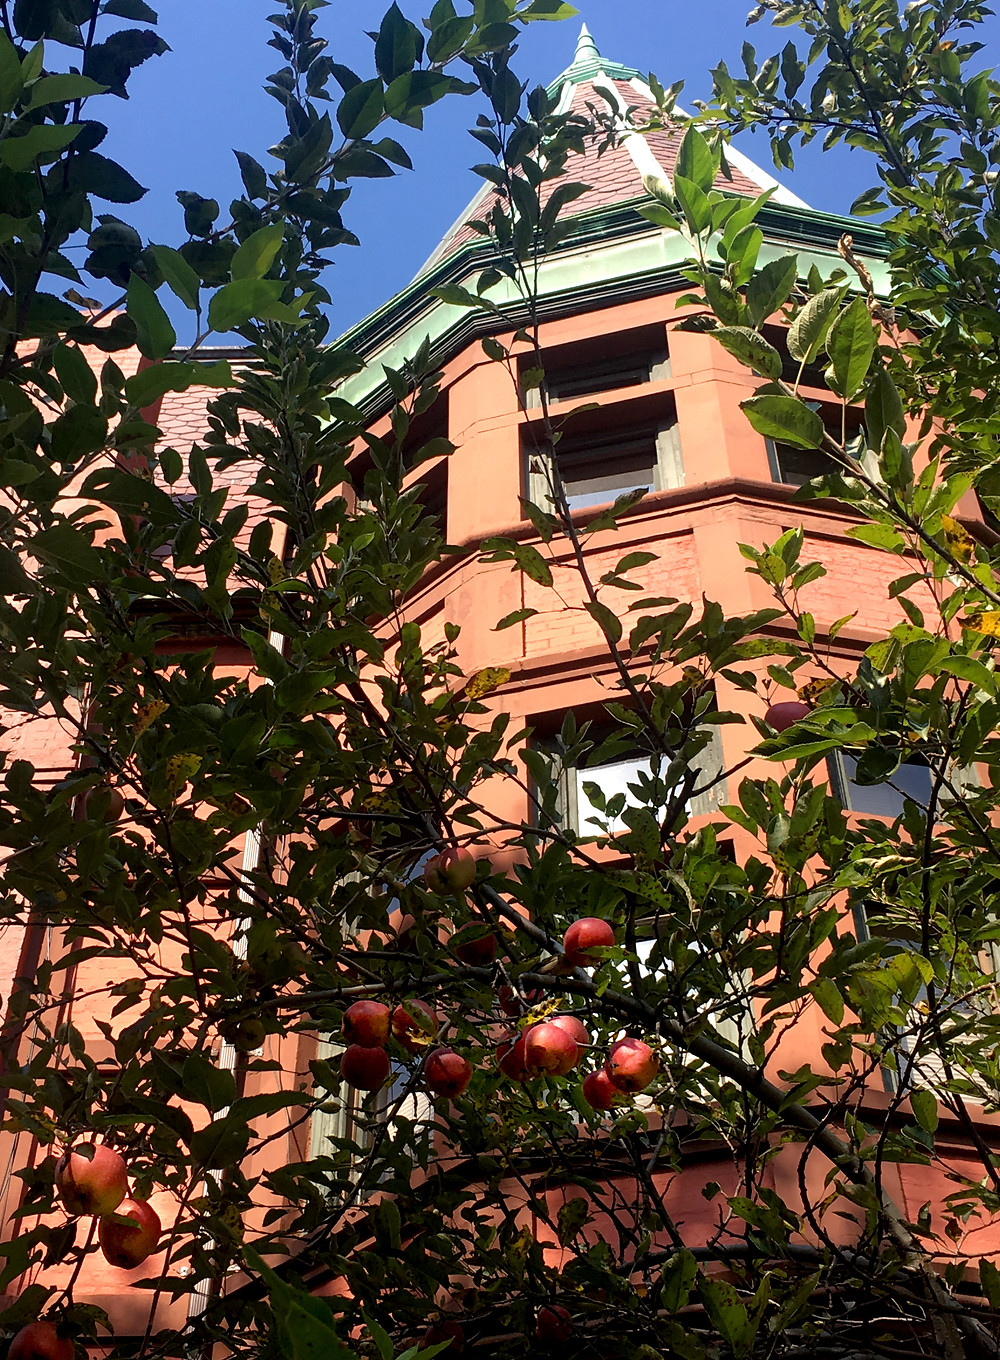 An apple tree grows in Harlem